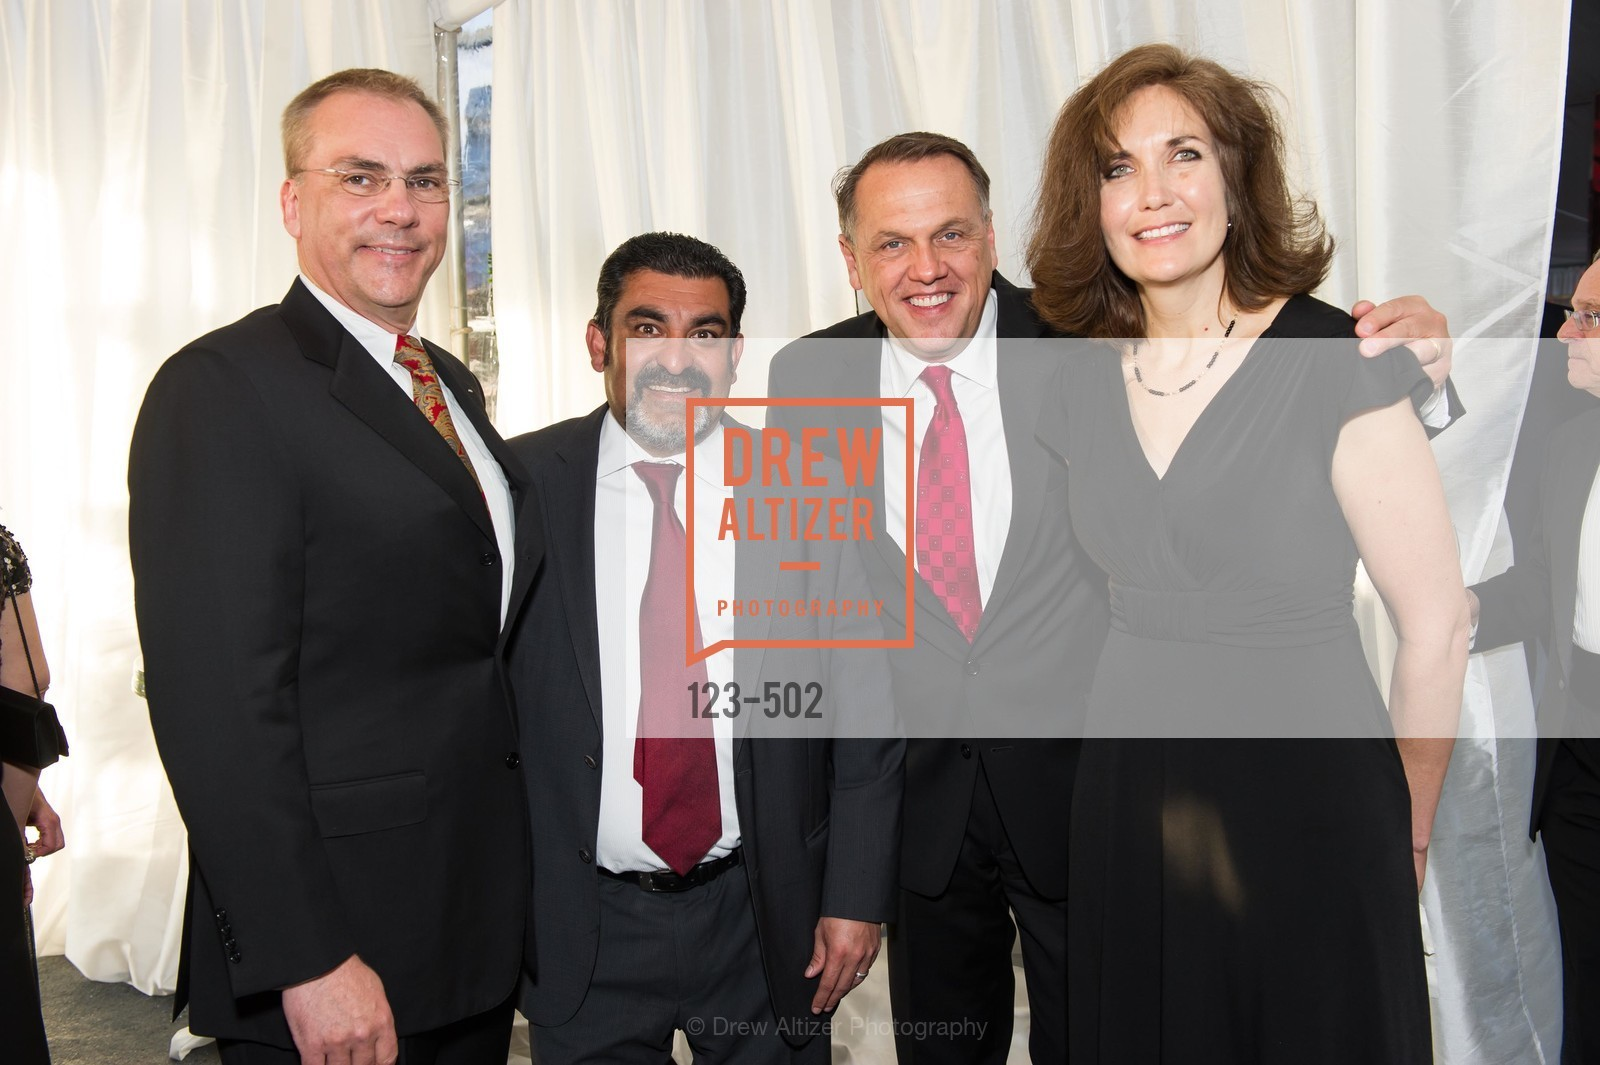 Scott Allison, Sanjay Datta, Tim Stephens, Lisa Stephens, 2014 RED CROSS Gala Honoring Paula Downey as the American Red Cross Bay Area Chapter Humanitarian CEO of the Year, US. Treasure Island (The Great Lawn), April 5th, 2014,Drew Altizer, Drew Altizer Photography, full-service agency, private events, San Francisco photographer, photographer california